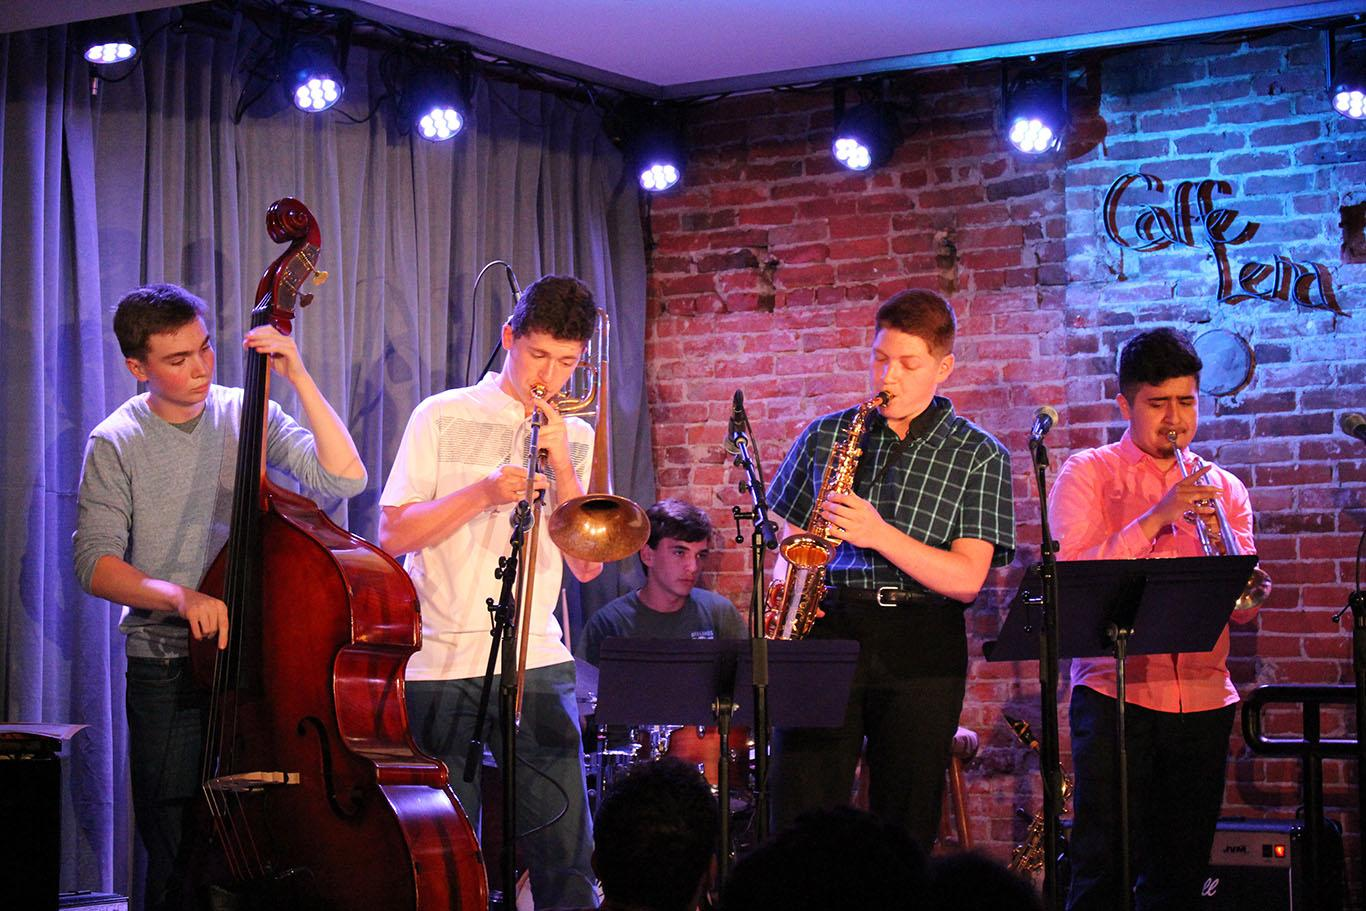 Jazz%20Participants%20perform%20at%20Caffe%20Lena%20in%20downtown%20Saratoga